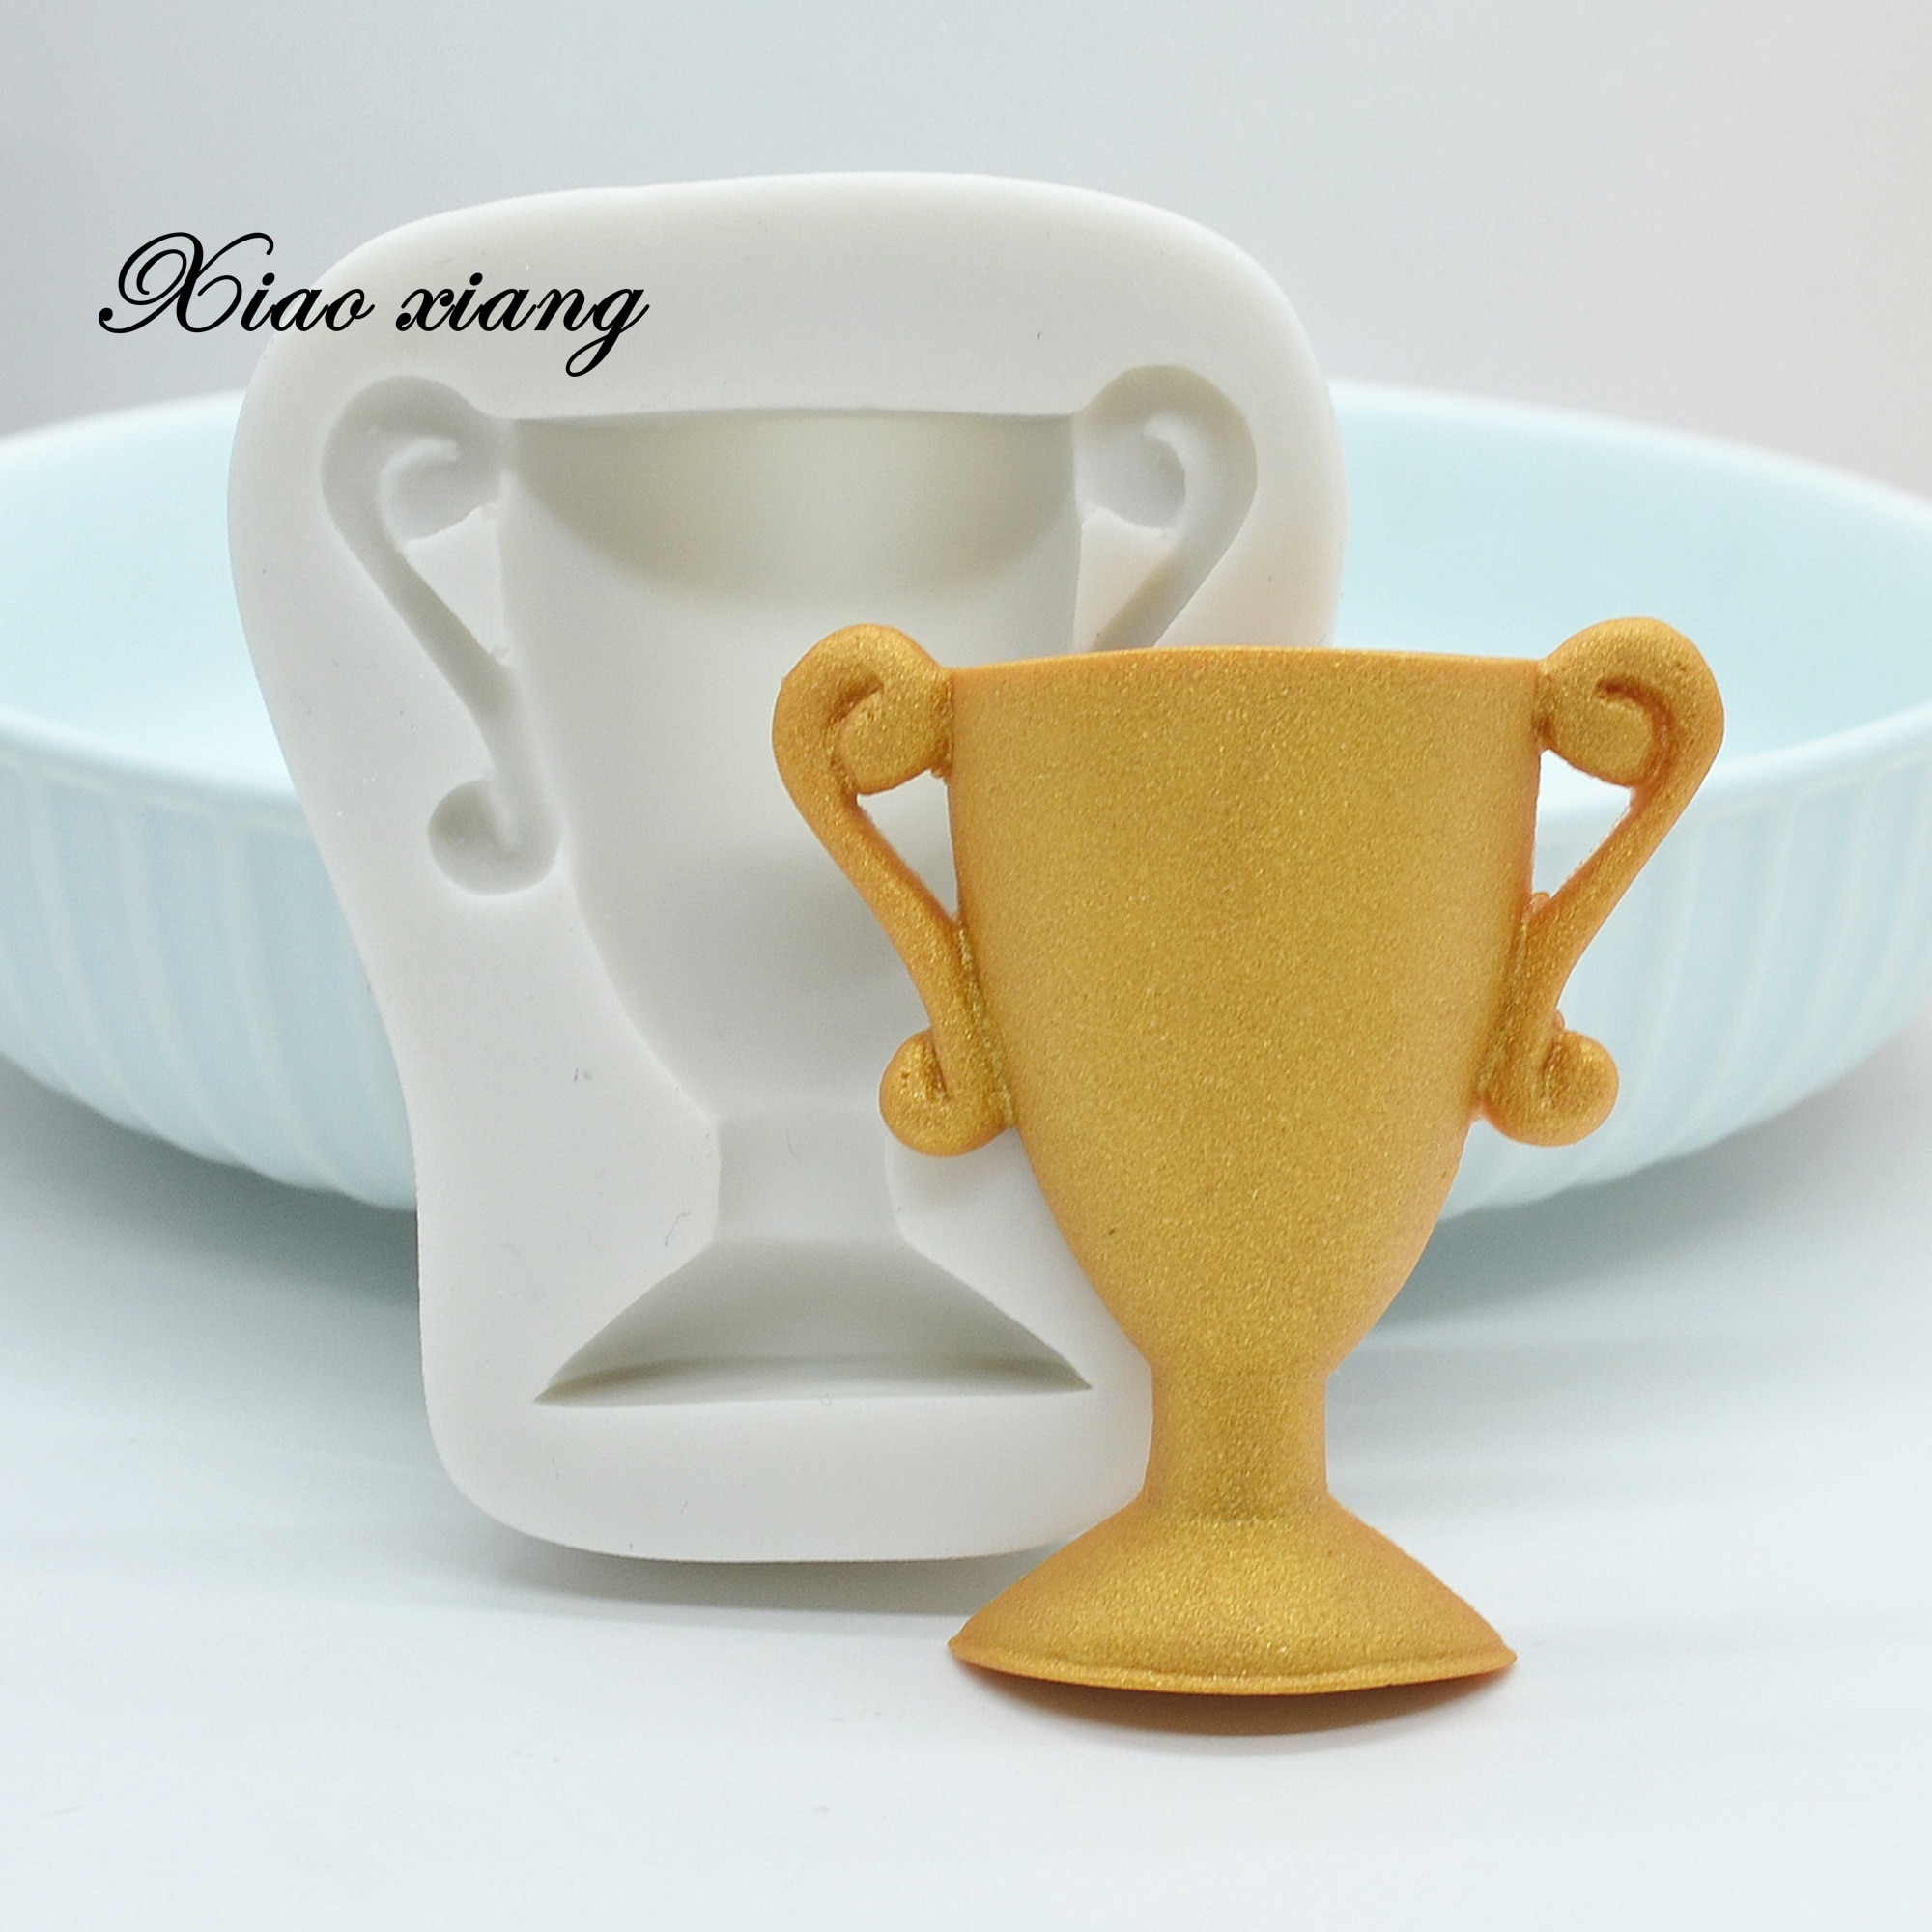 aliexpress.com - XiaoXiang Championship Trophy Fondant Silicone Molds Wedding Cake Decorating Tools Chocolate Molds For Baking Resin Molds M2031